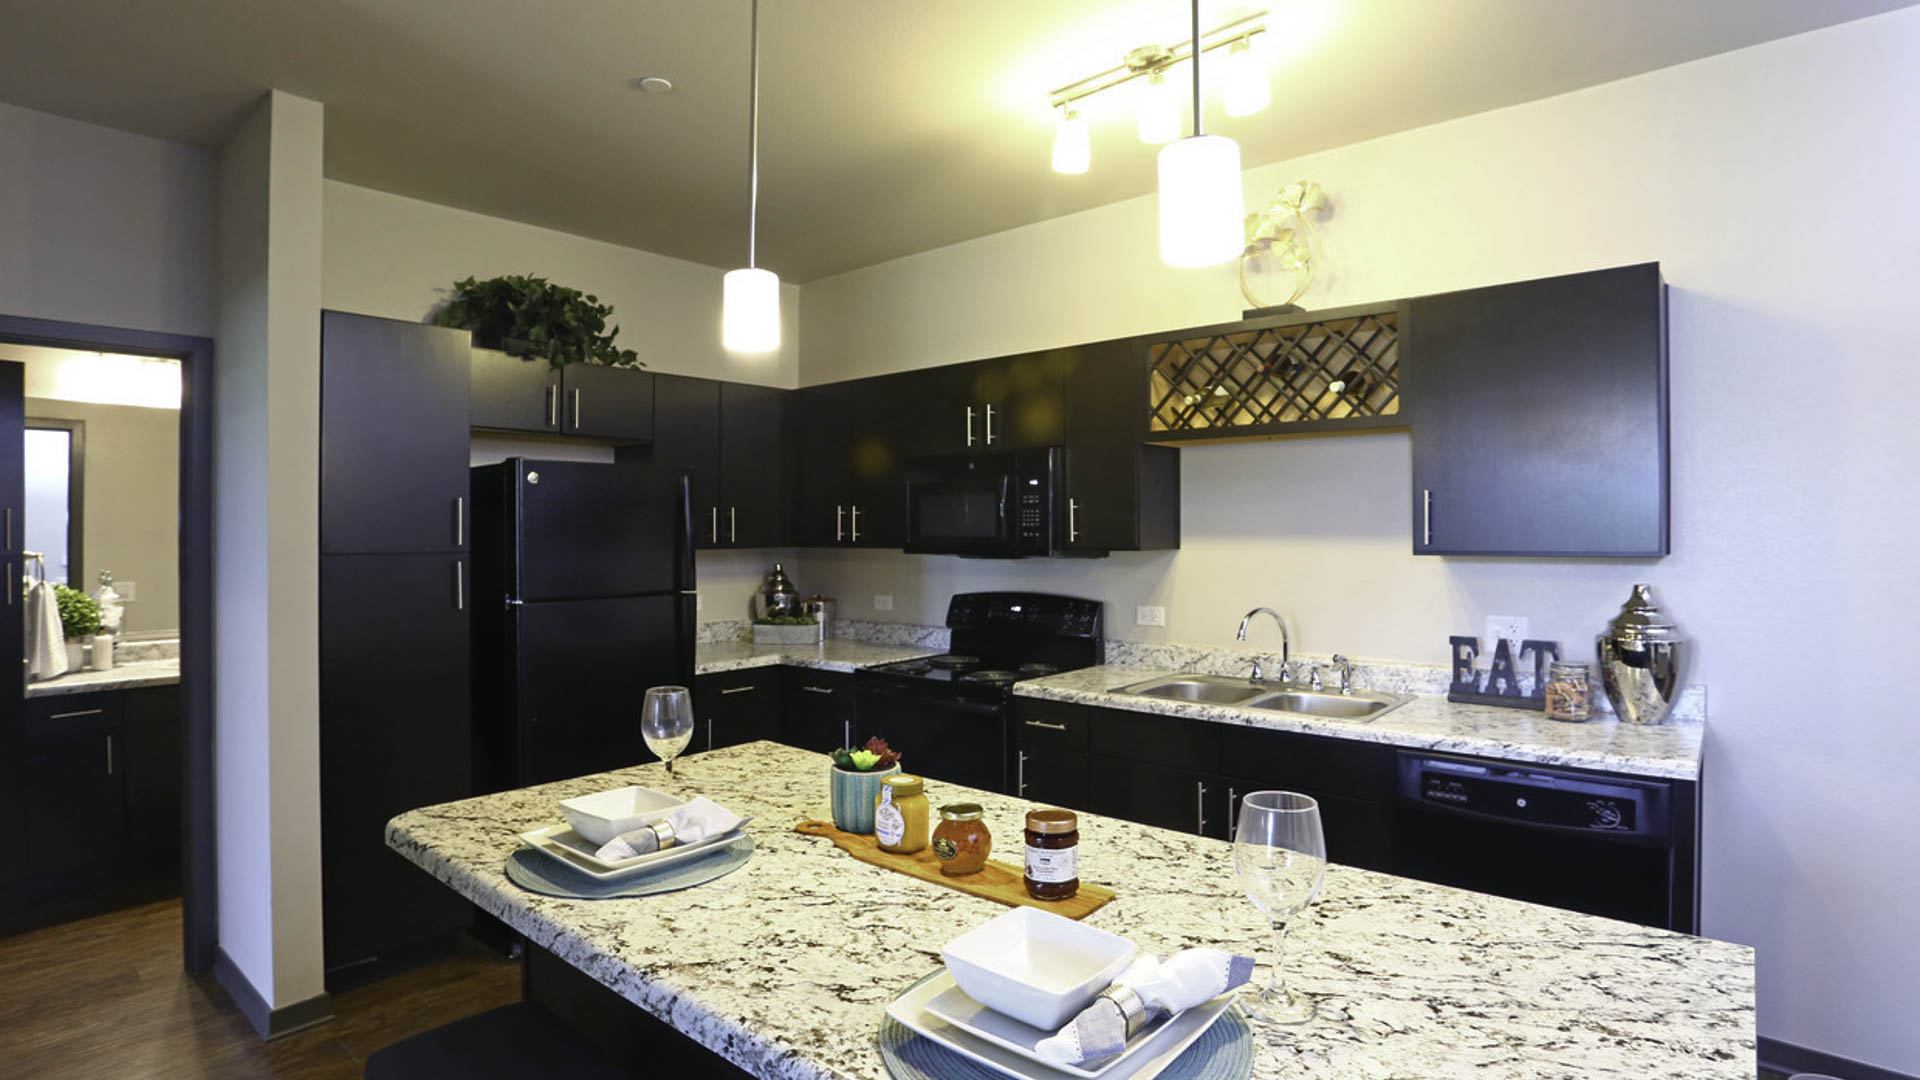 Springs at Canterfield luxury kitchen in West Dundee, IL